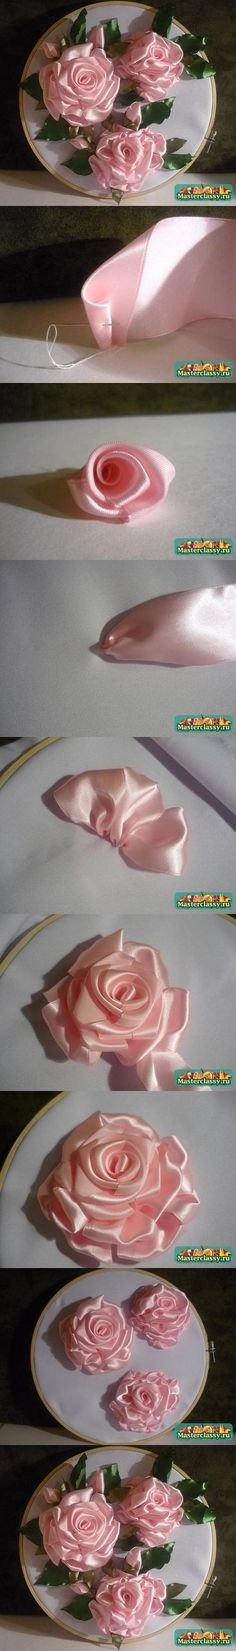 DIY Embroidery Ribbons Rose DIY Projects / UsefulDIY.com on imgfave